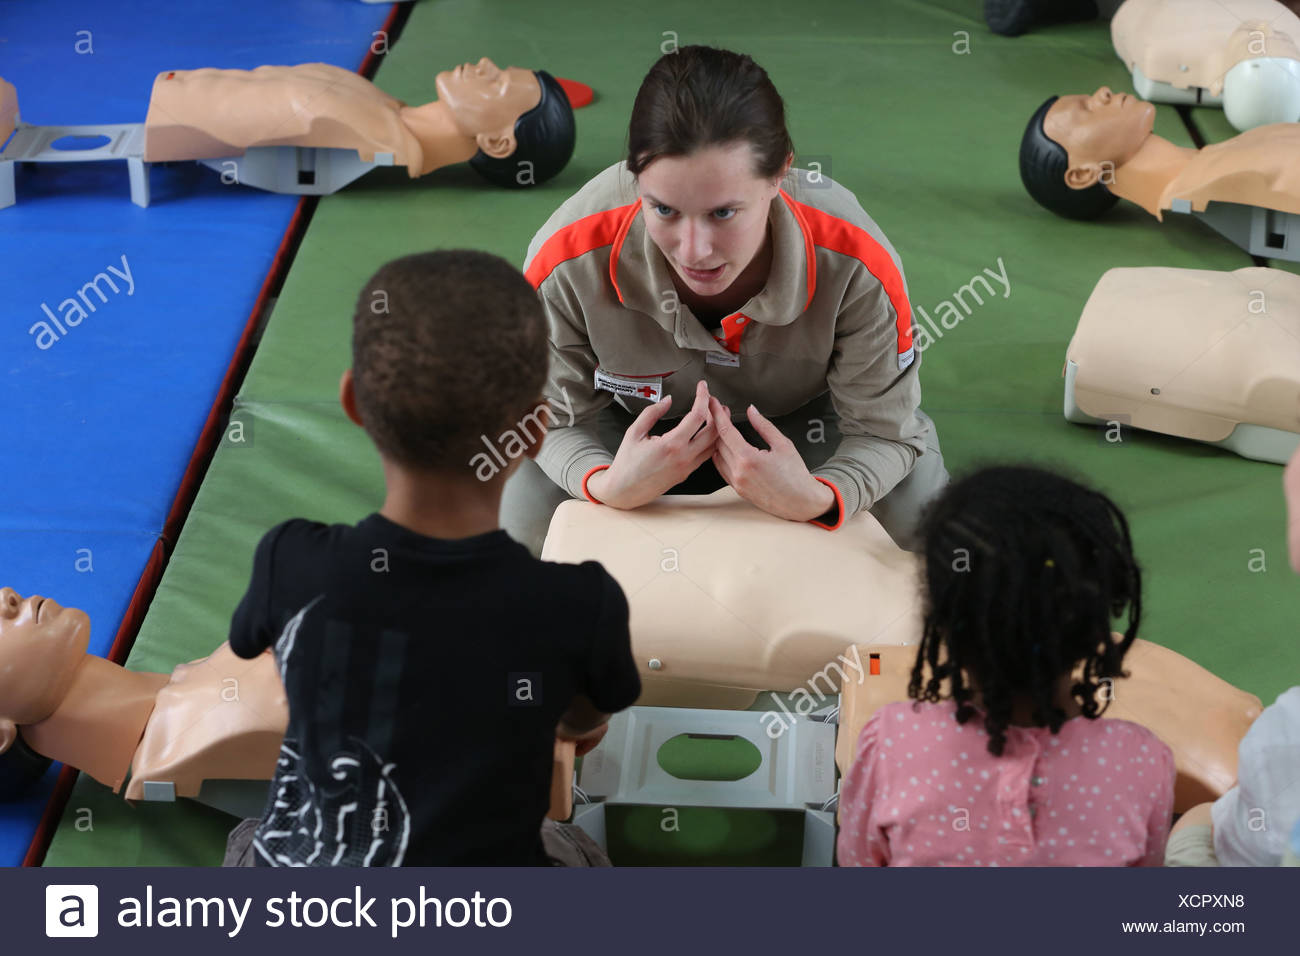 Workshop organised by the Red Cross. Life-saving first aid on a model. Paris. France. - Stock Image